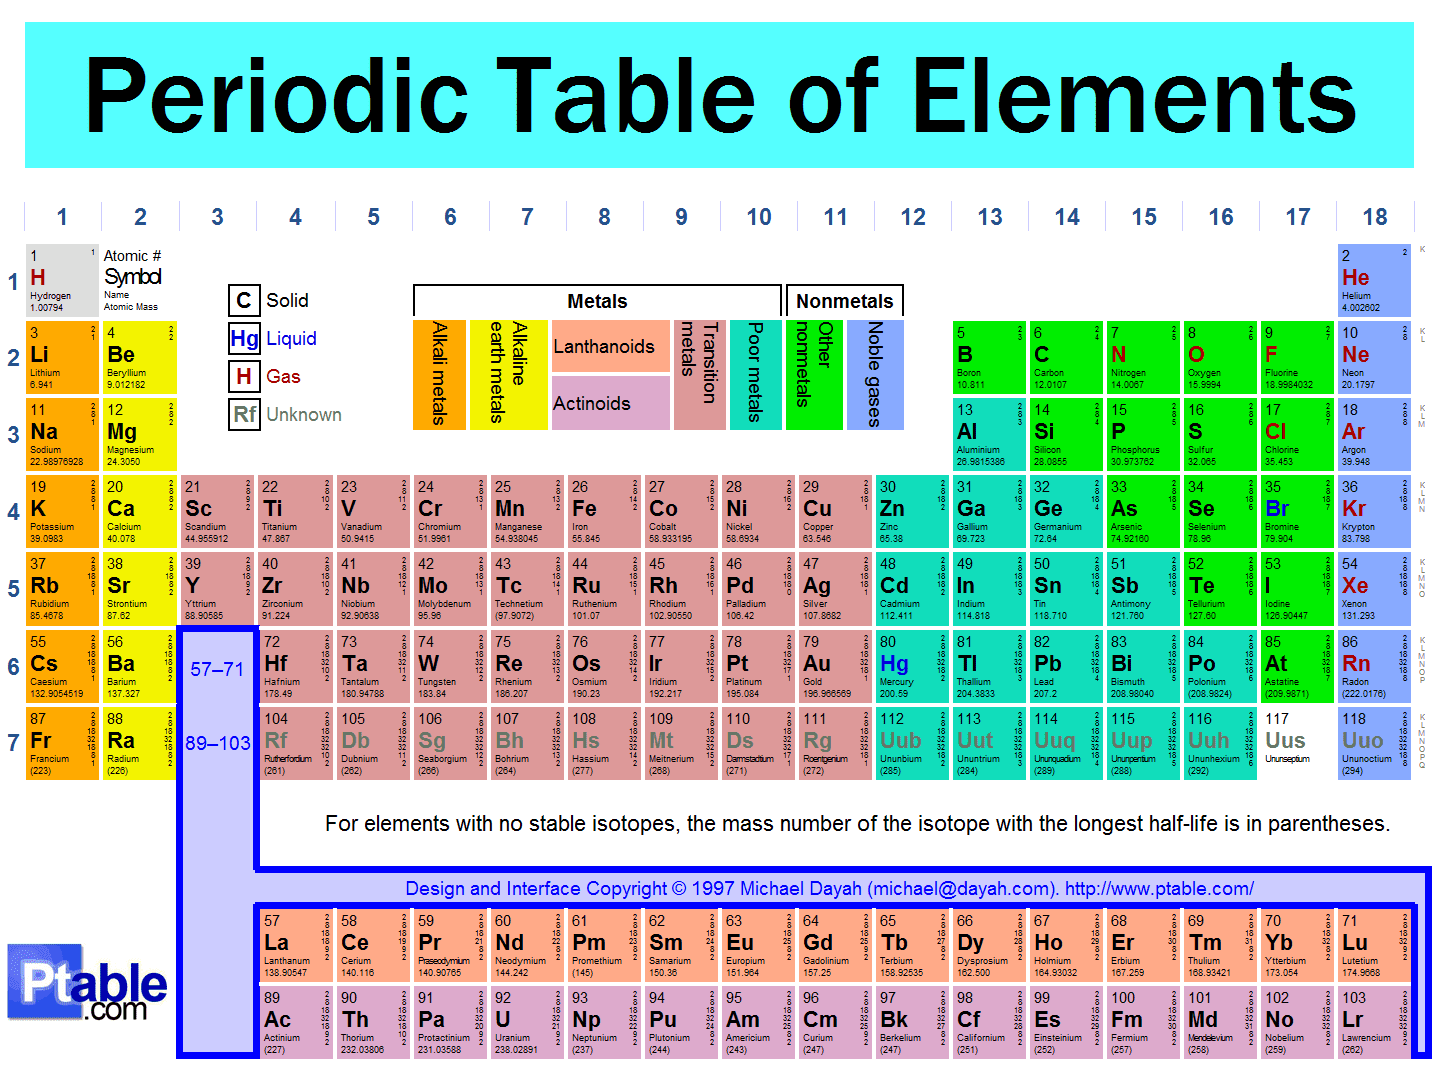 Cool stuff 4 catholics periodic table of elements if you are looking for an interactive periodic table of elements for studying chemistry when you click on the element at ptable lots of info pops up urtaz Gallery